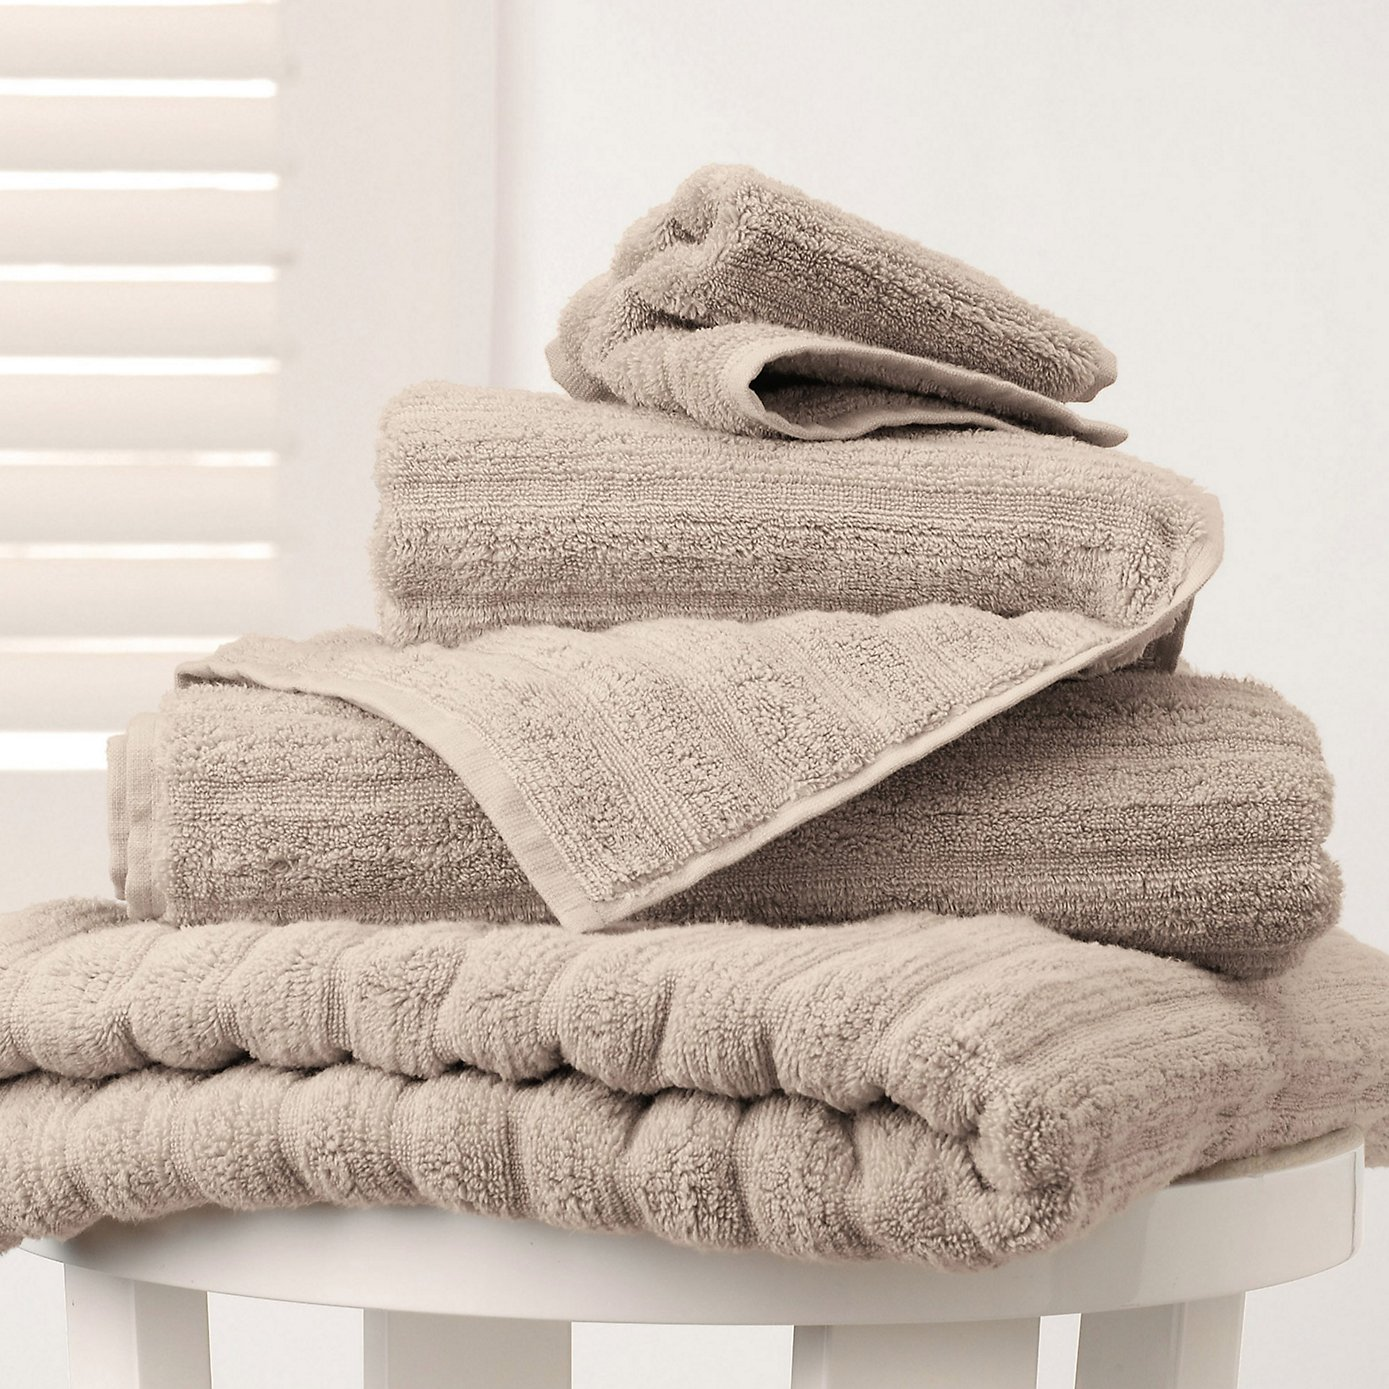 mamasVIB | V. I. BABYMAMAS: How to create a #SPATHROOM at home with The White Company | the white company | collective | blogger s| beauty | spathroom } spa at home | bathroom | fluffy towels | how to spa at home | spa treats | bathroom chic | white co | ribs | waffle slippers | luxury bathing | seychelles bath and body  candles | the white co | spa | bathroom | mamasVIb | blogger | spa time | treatments